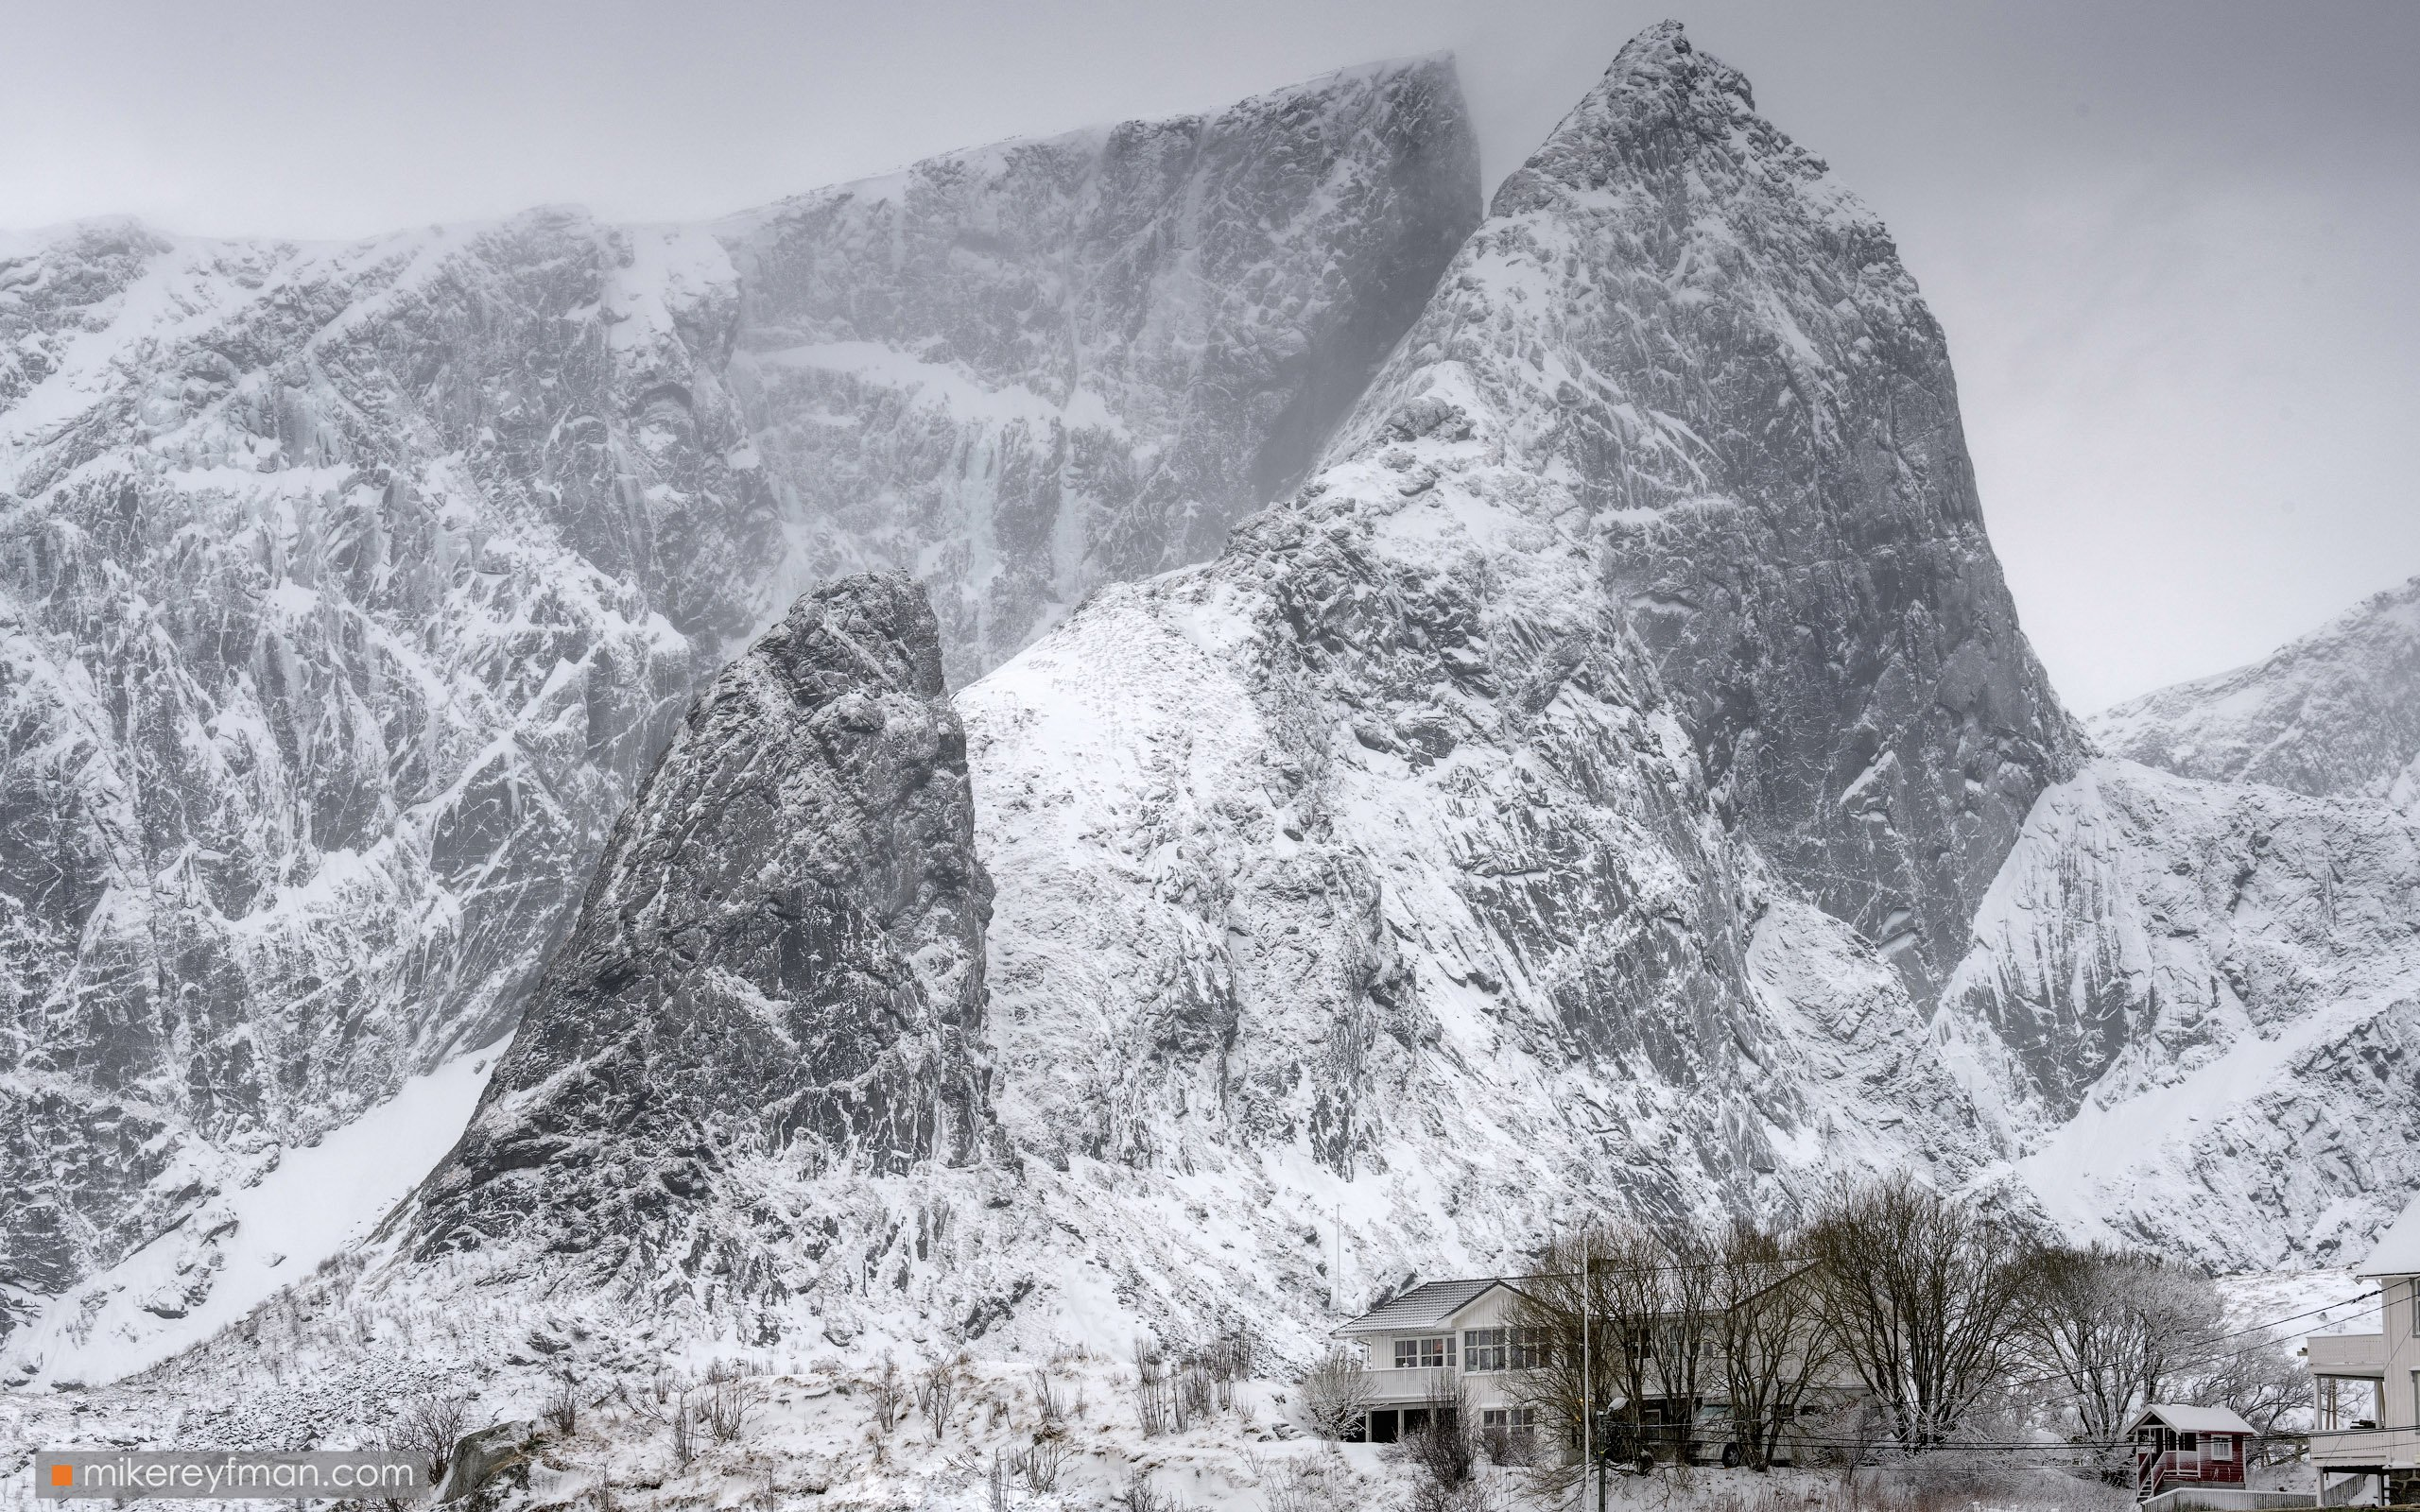 arctic, coast, europe, fjord, landscape, lofoten, archipelago, mountain, nordic, nordland, norway, peaks, rorbuer, scandinavia, snowscape, weather, winter, reine, village, Майк Рейфман